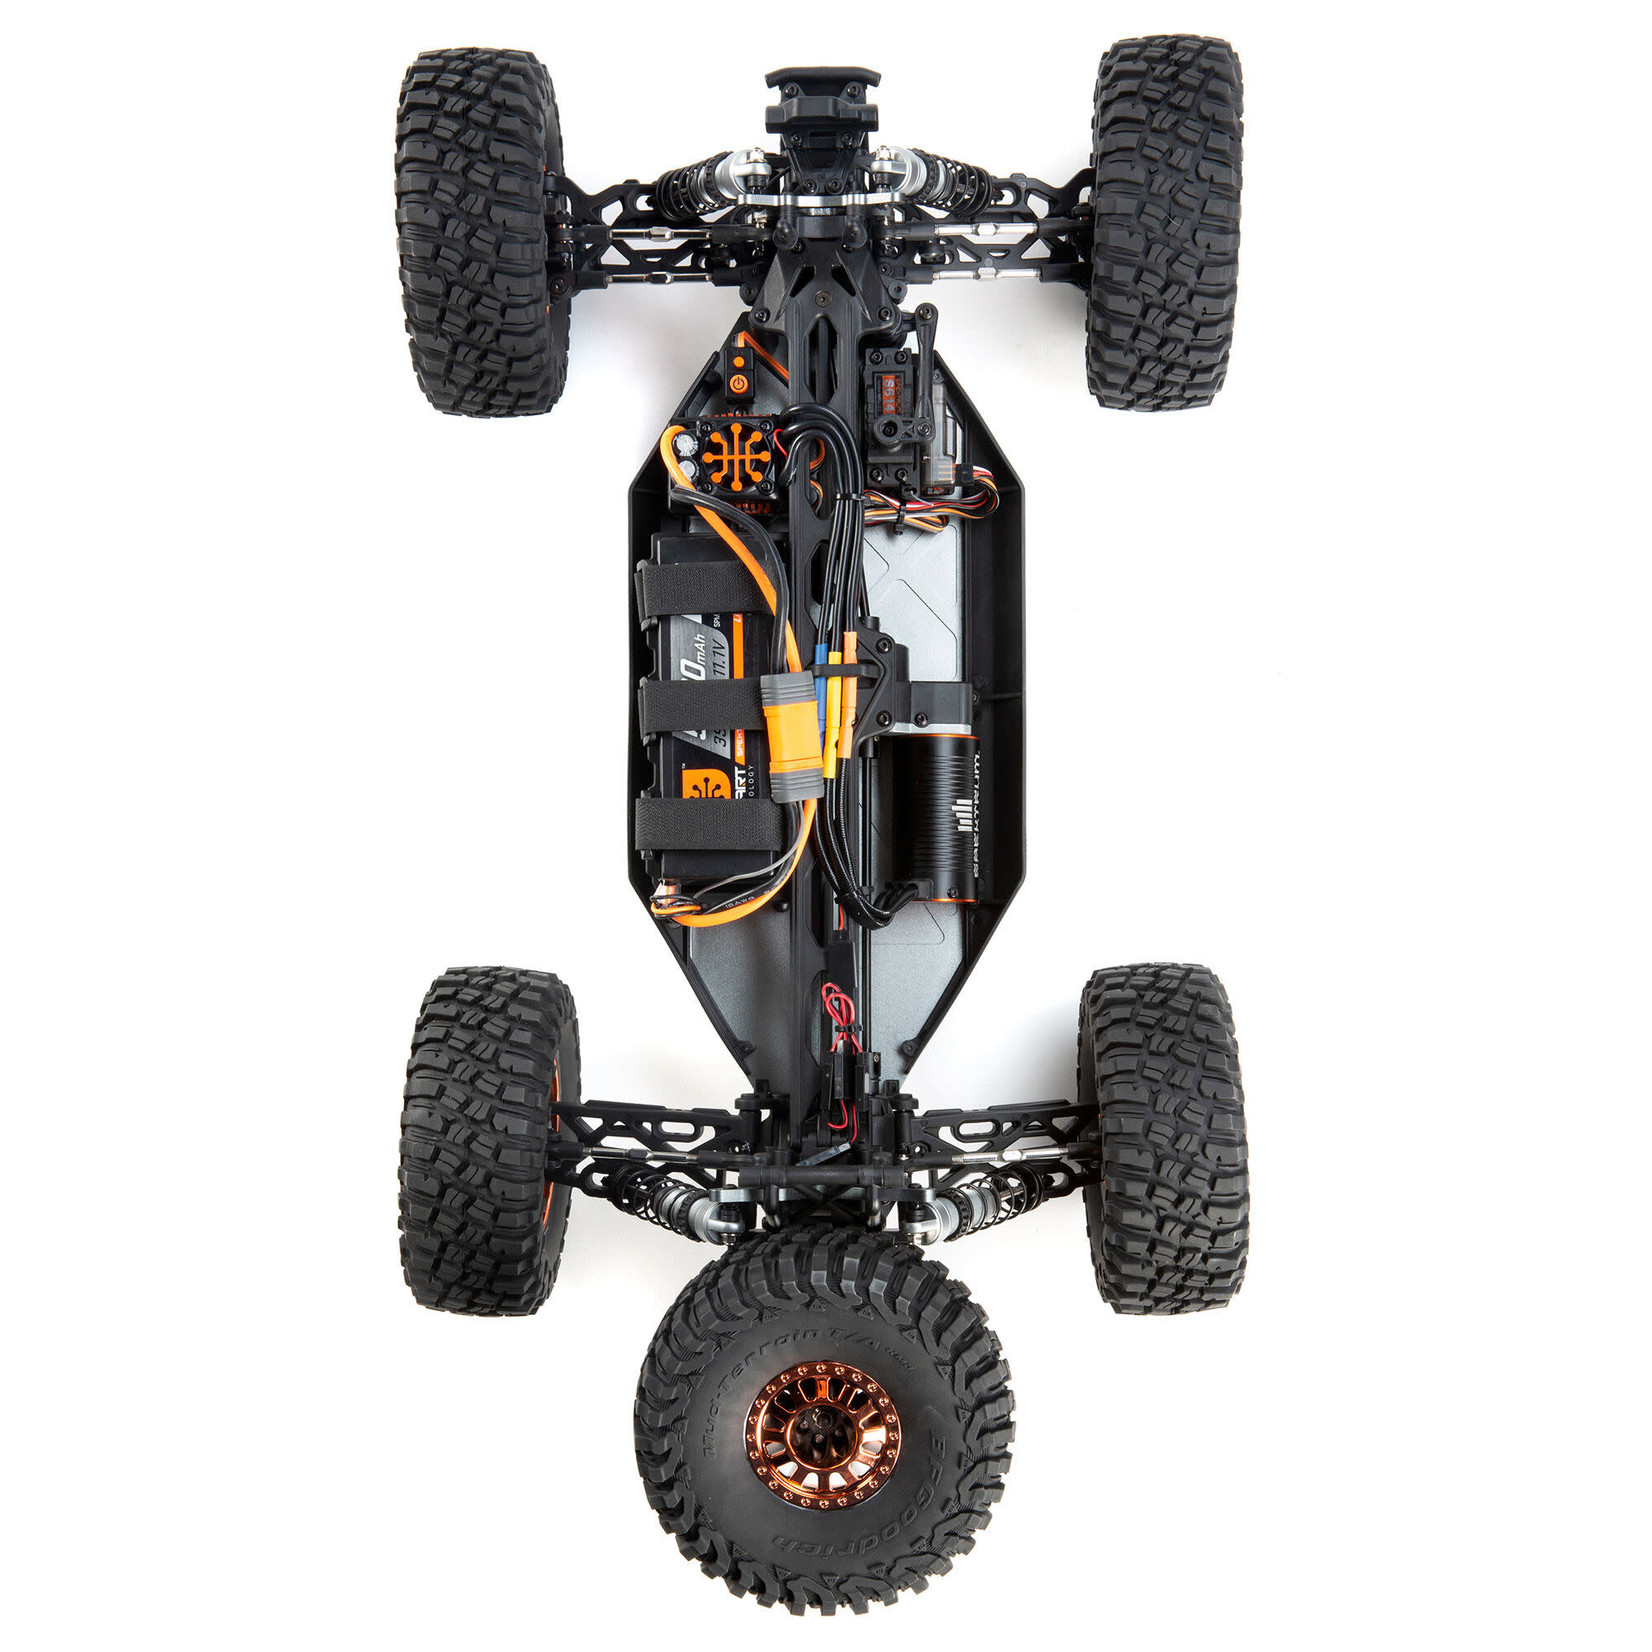 Losi LOS03028 Losi 1/10 Lasernut U4 4WD Brushless RTR with Smart and AVC